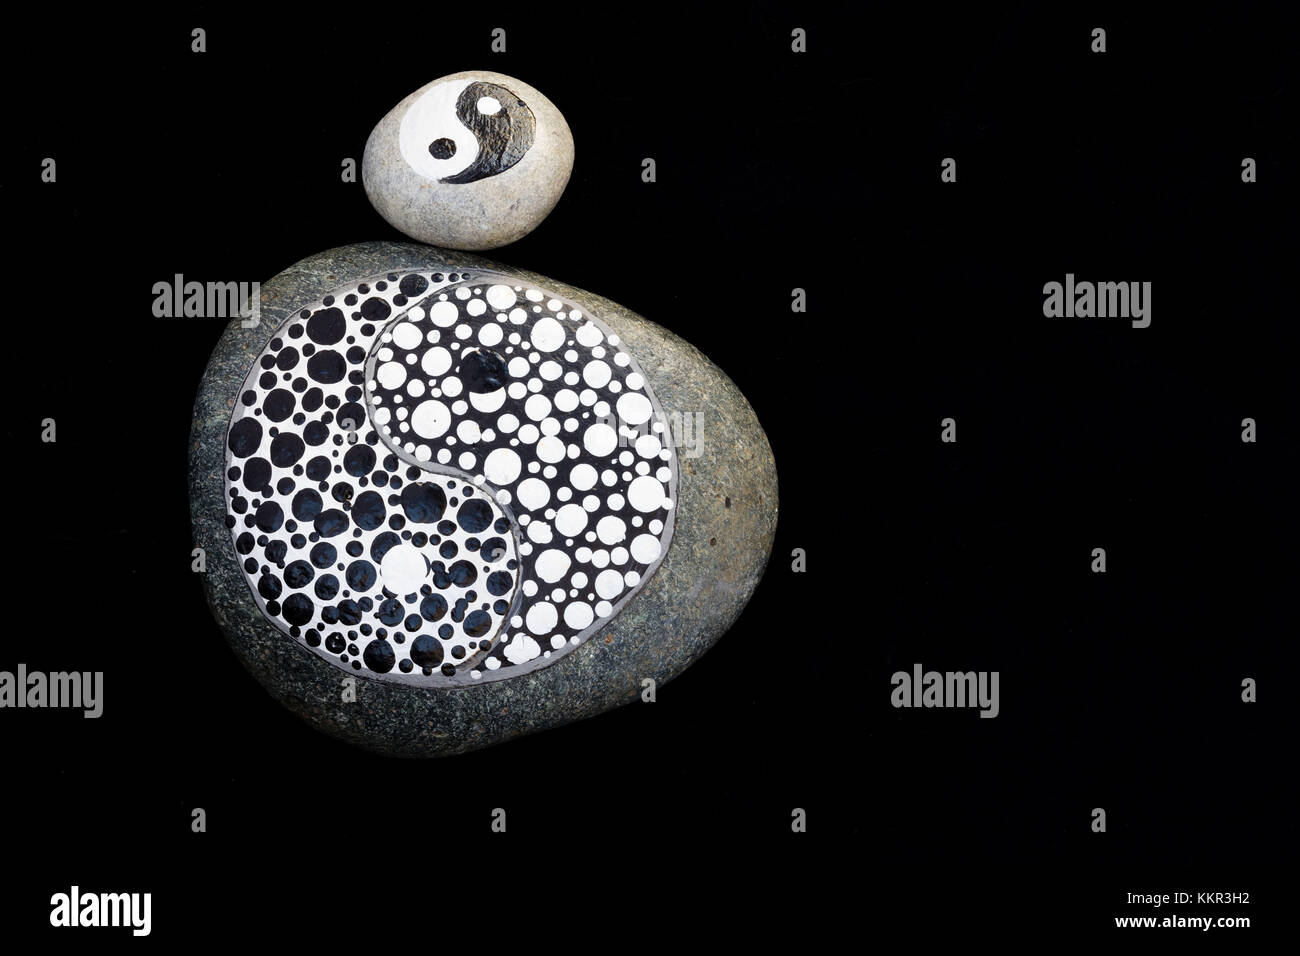 painted stones, yin and yang in black and white, Stone Art - Stock Image